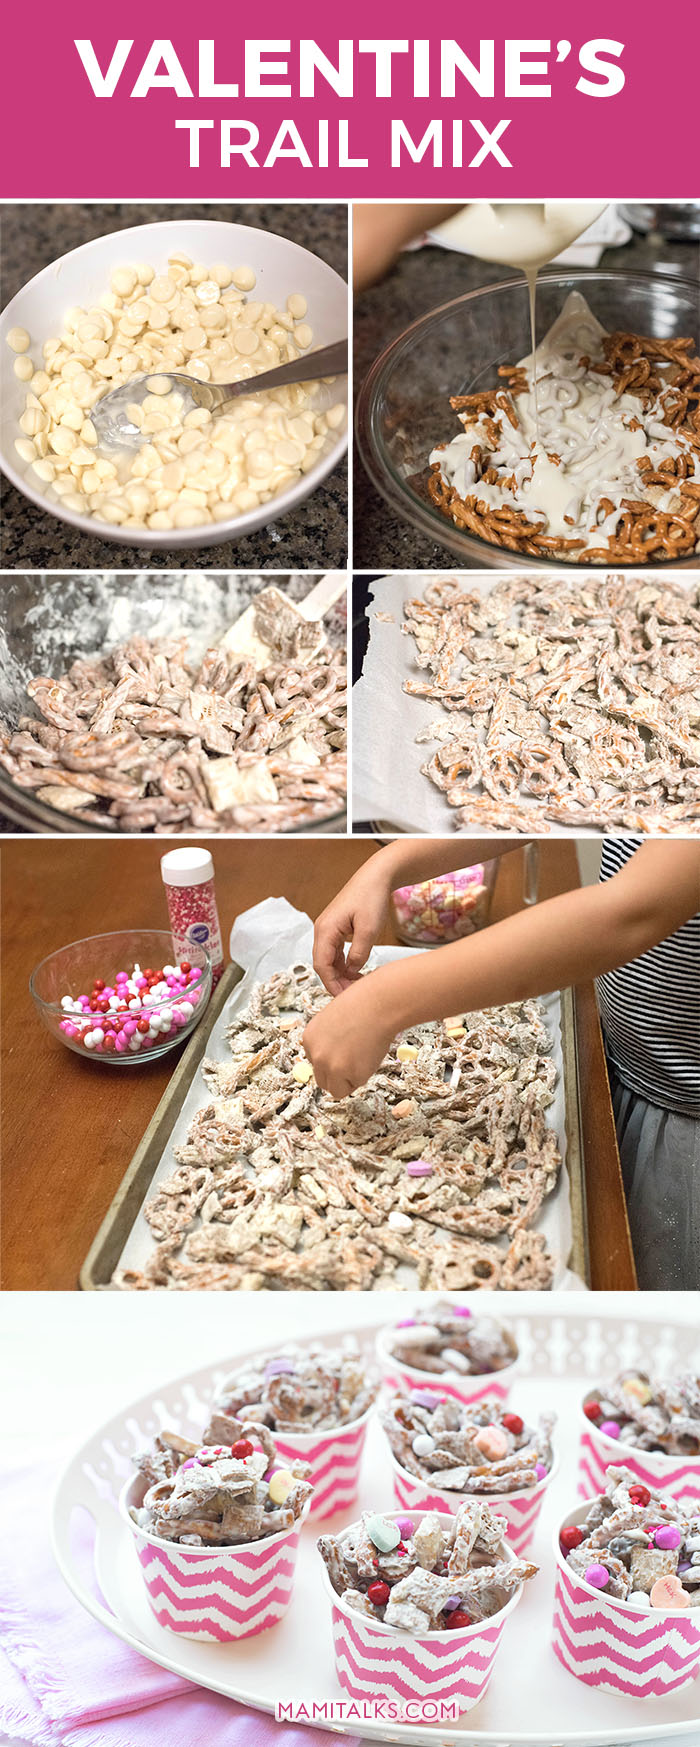 Valentine trail mix recipe, step-by-step pictures. -Mamitalks.om